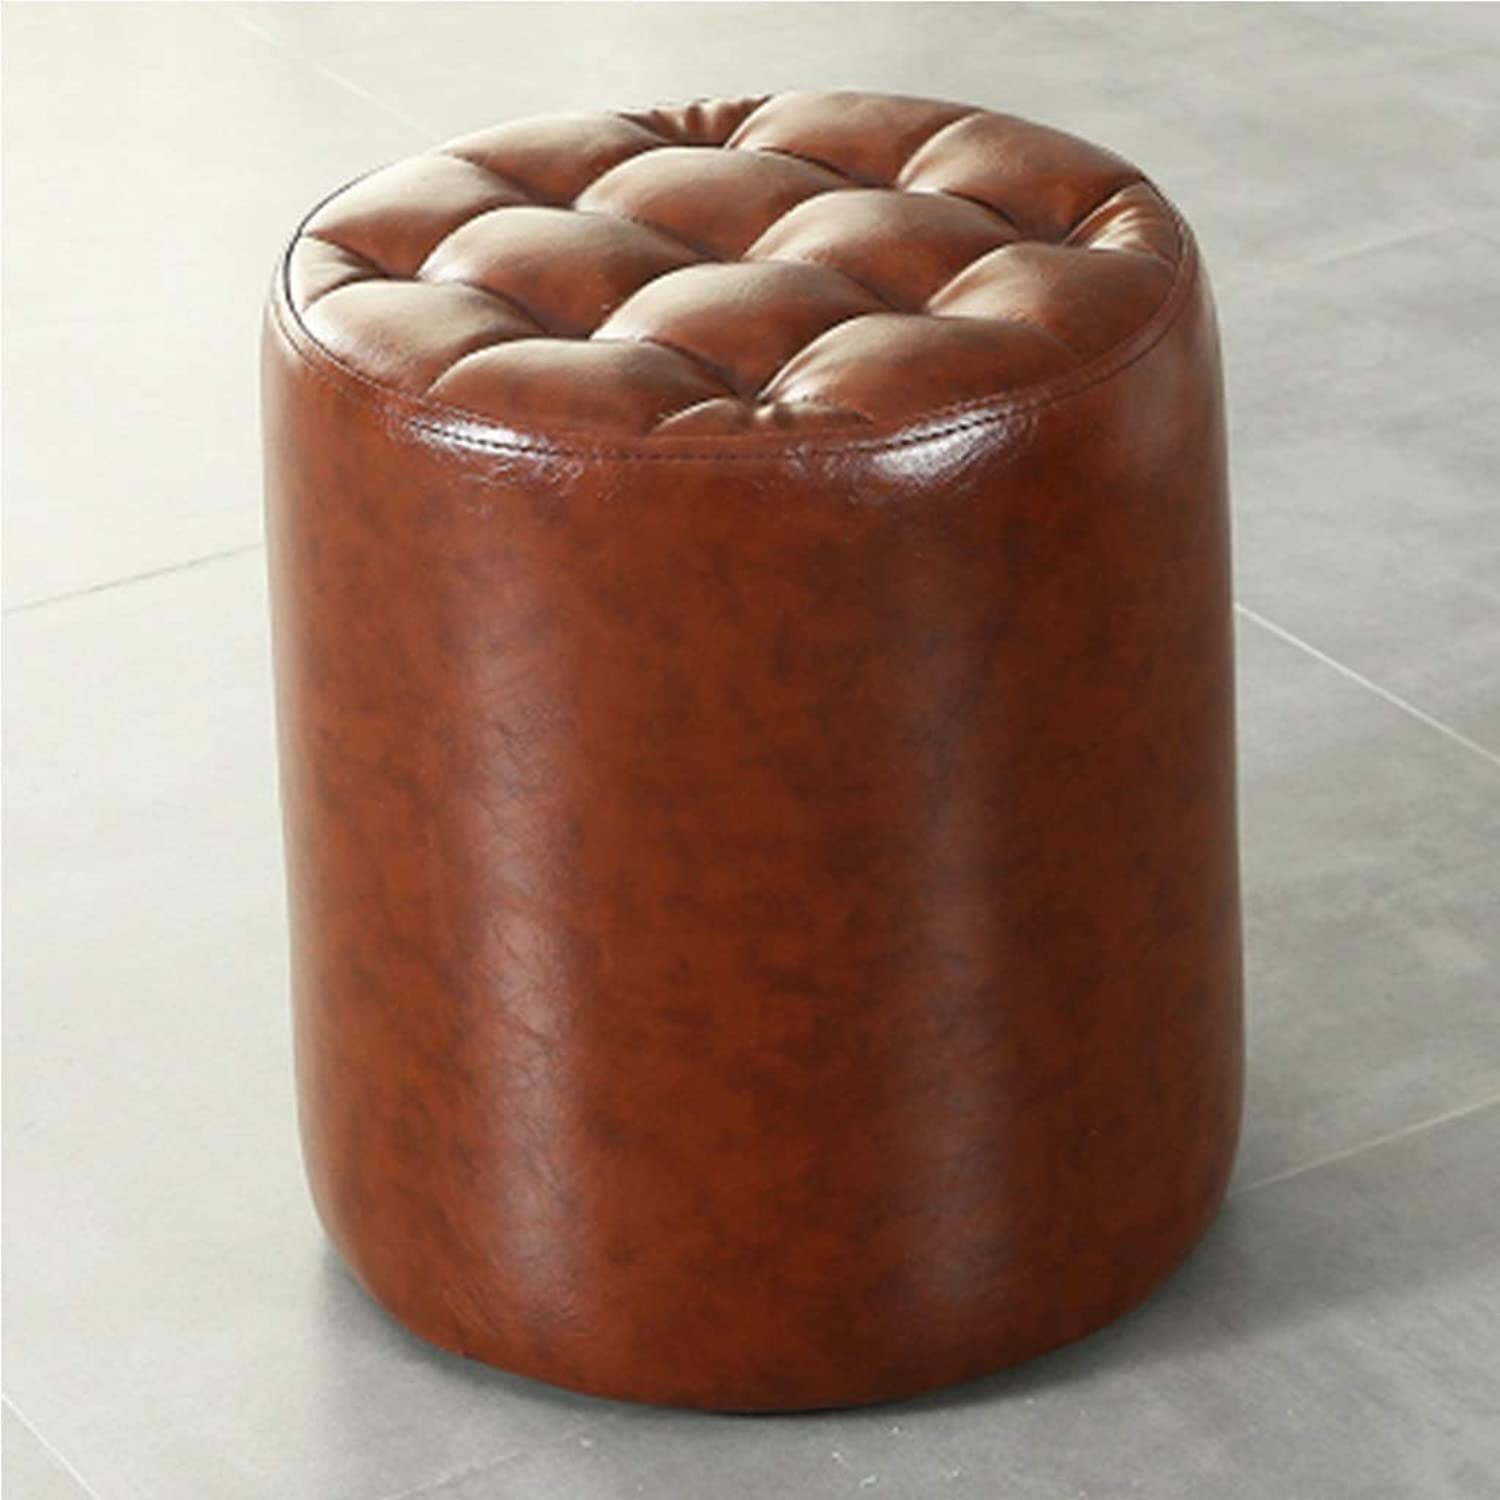 RHHWJJXB Leather Leather Stool Sofa Stool Home Living Room Square Stool Adult shoes Bench Fitting Room Small Leather Stool Stool (color   A)